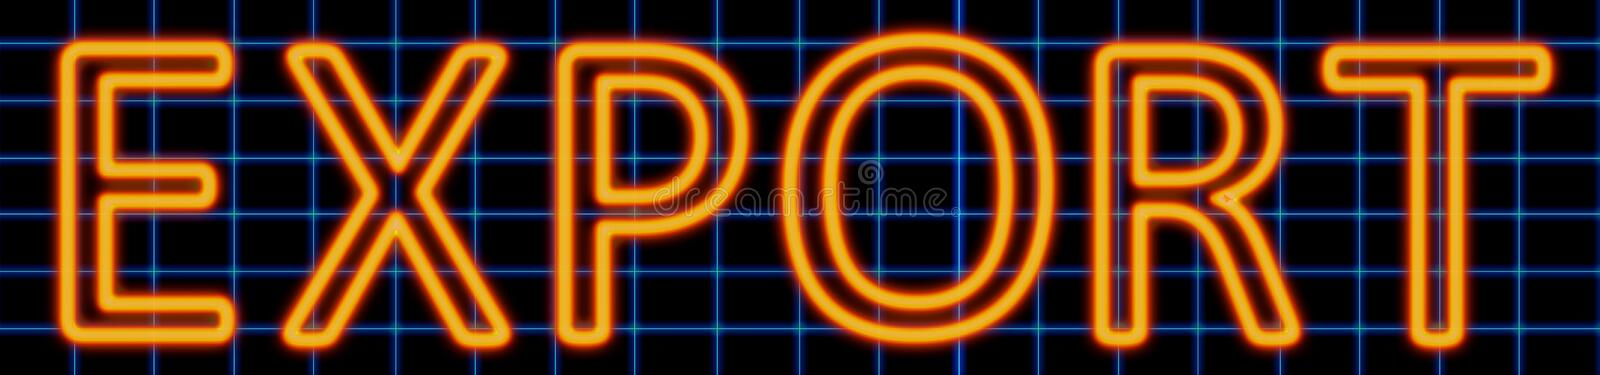 Export neon sign royalty free illustration